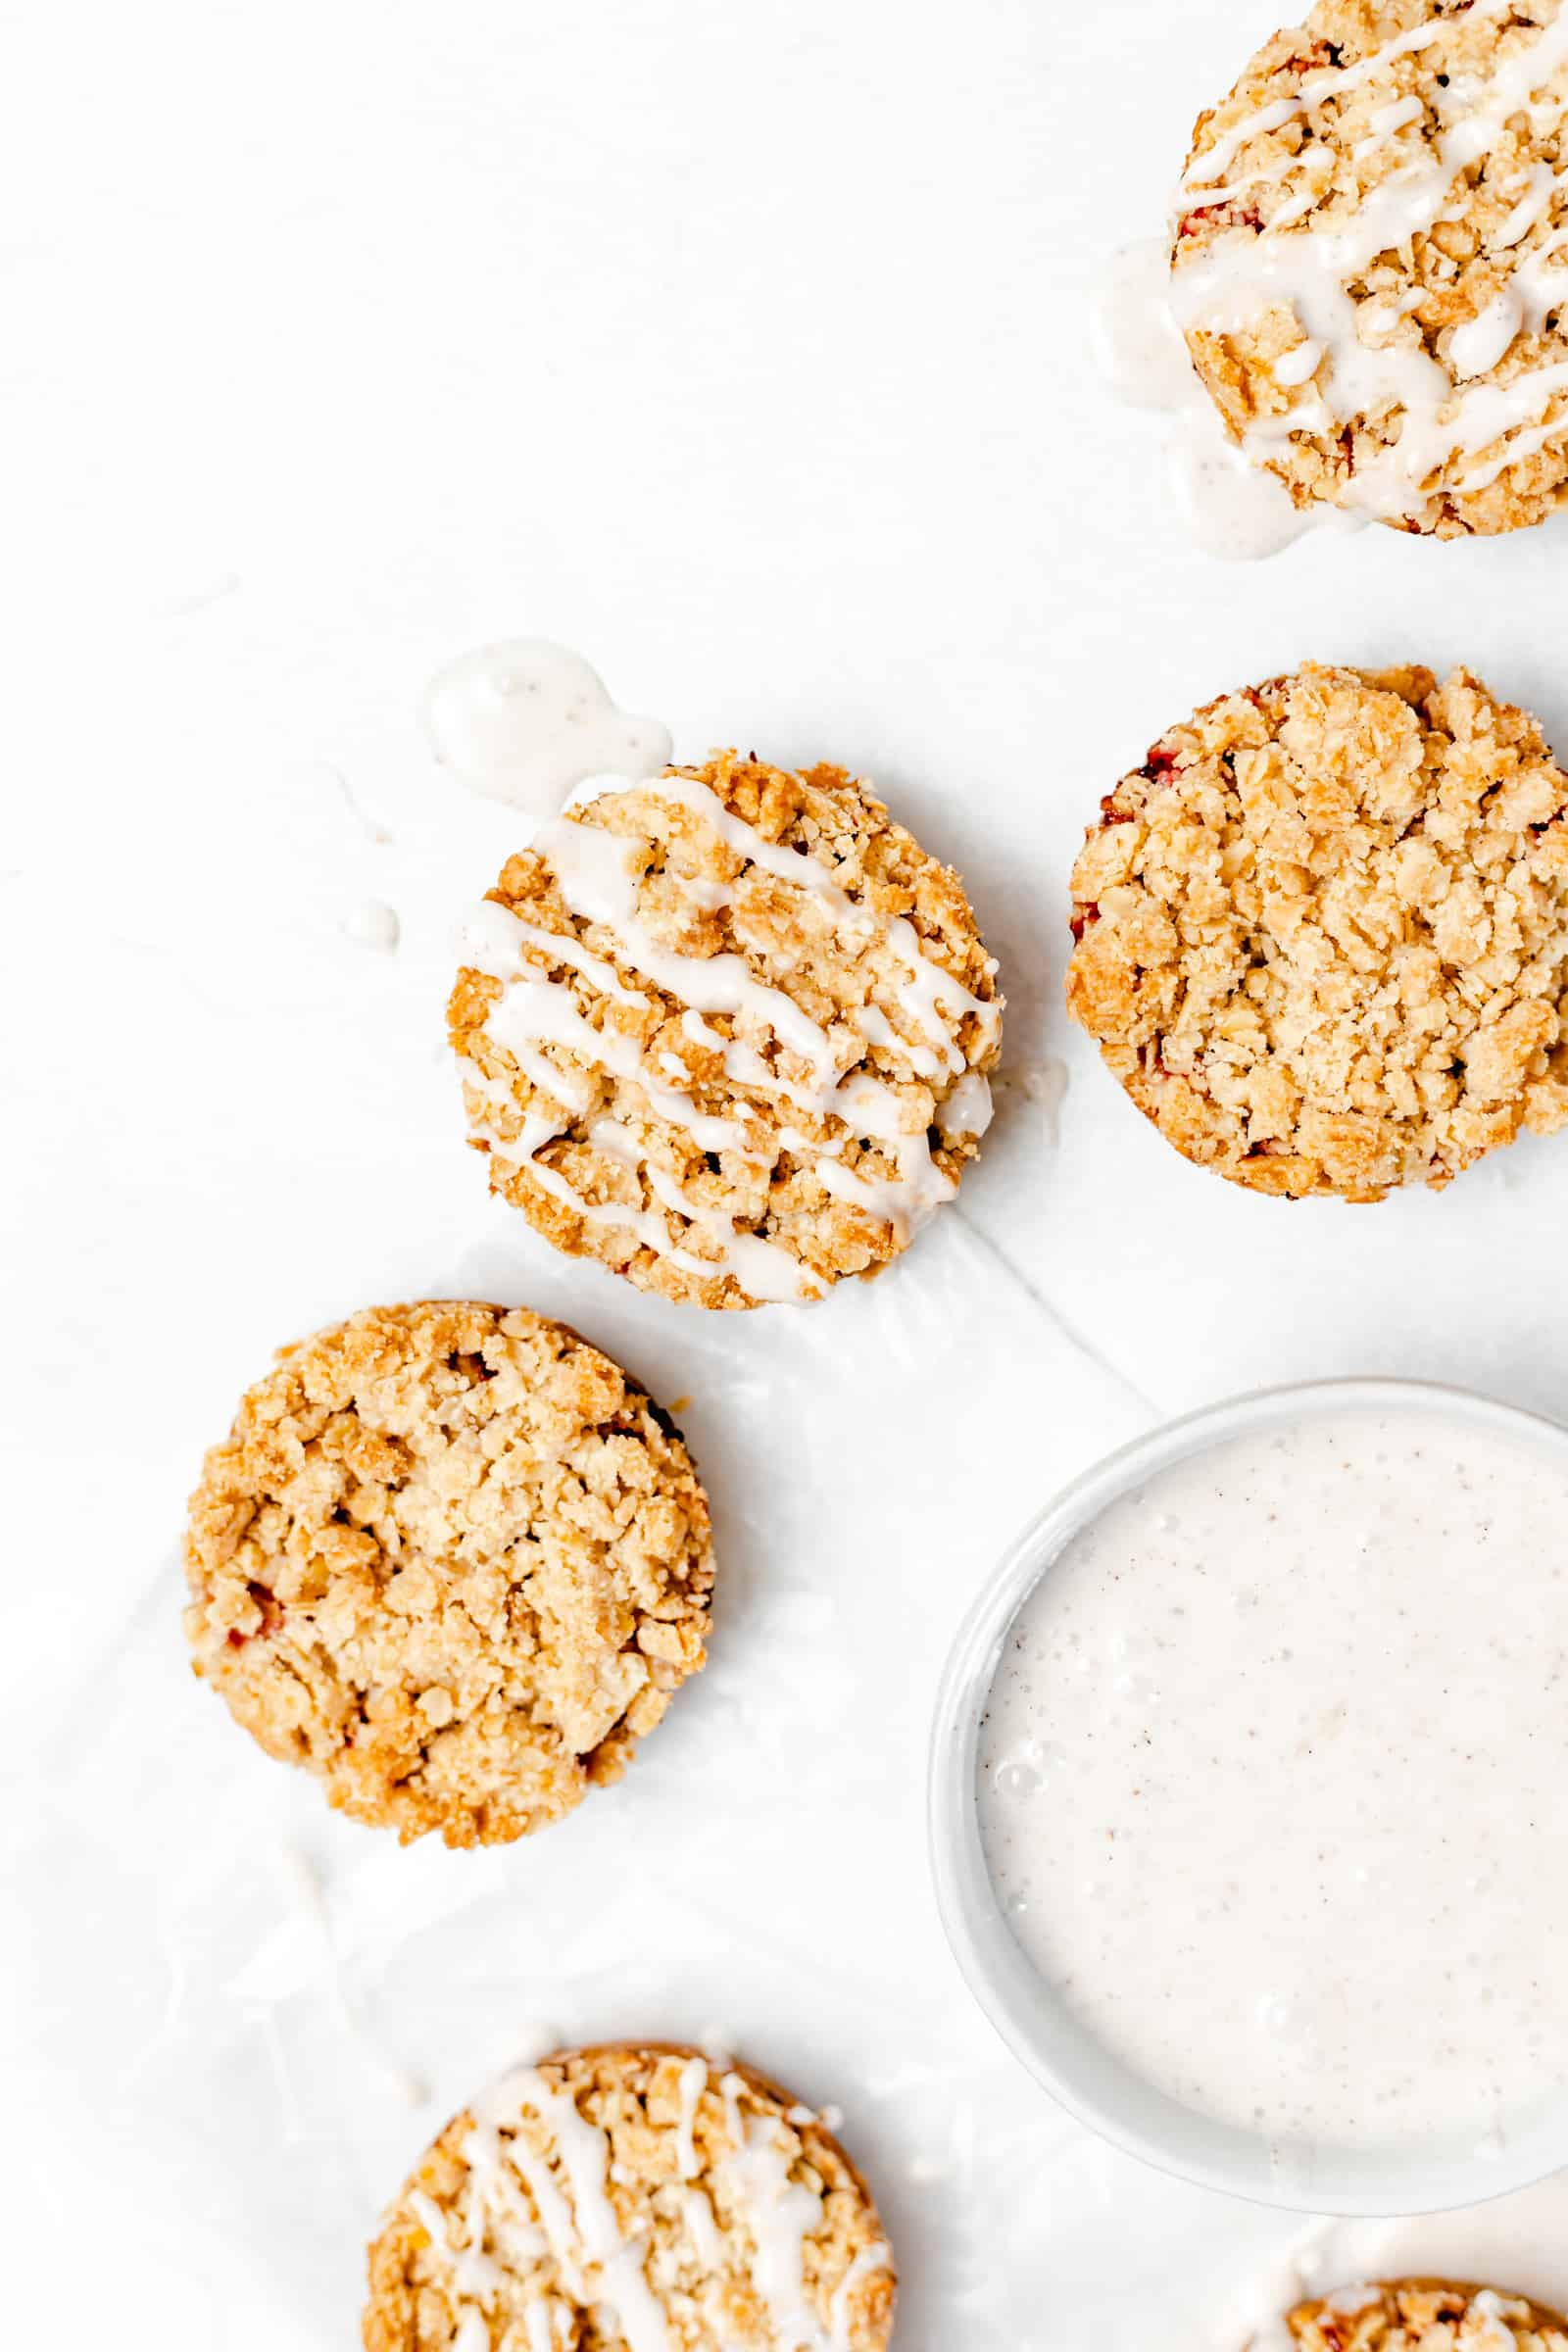 Strawberry Crumble Cookies with Vanilla Bean Glaze